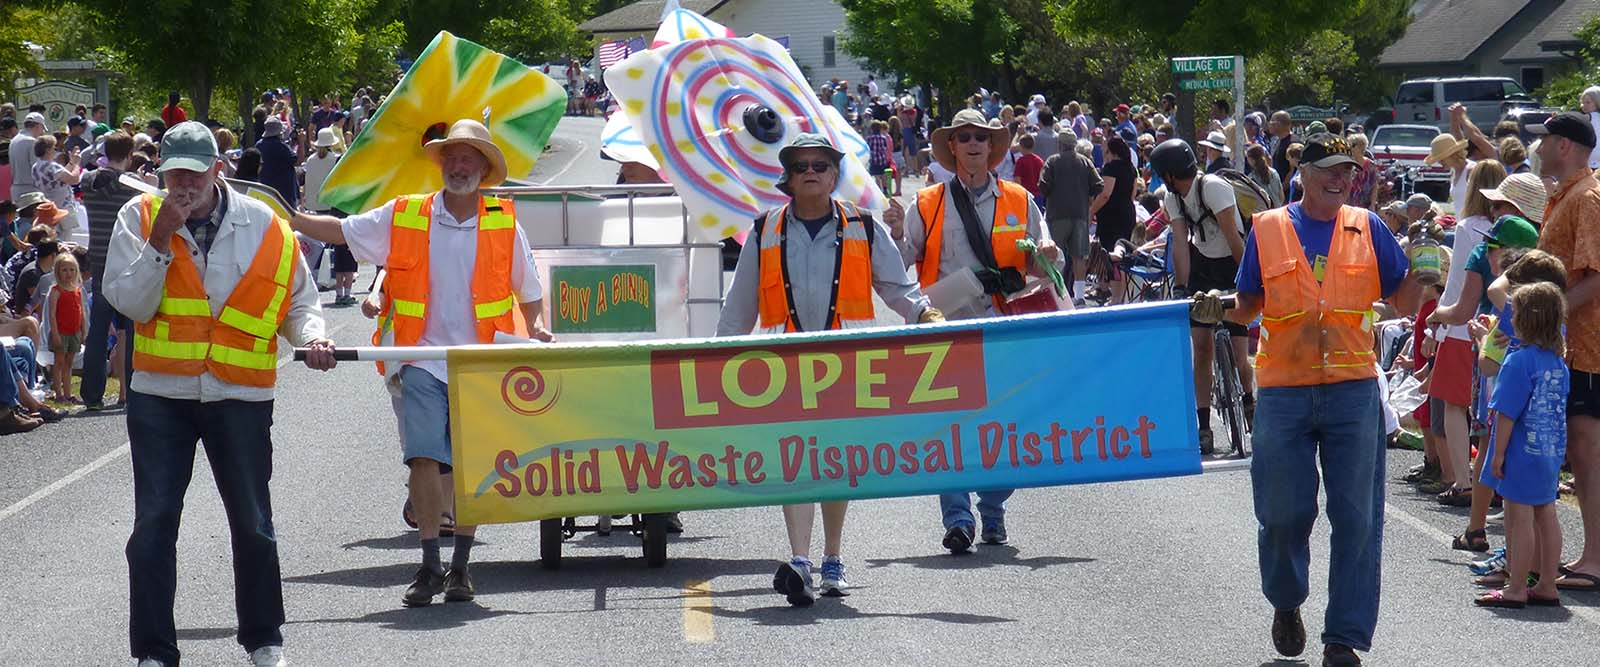 lopez island solid waste district july fourth 4th parade